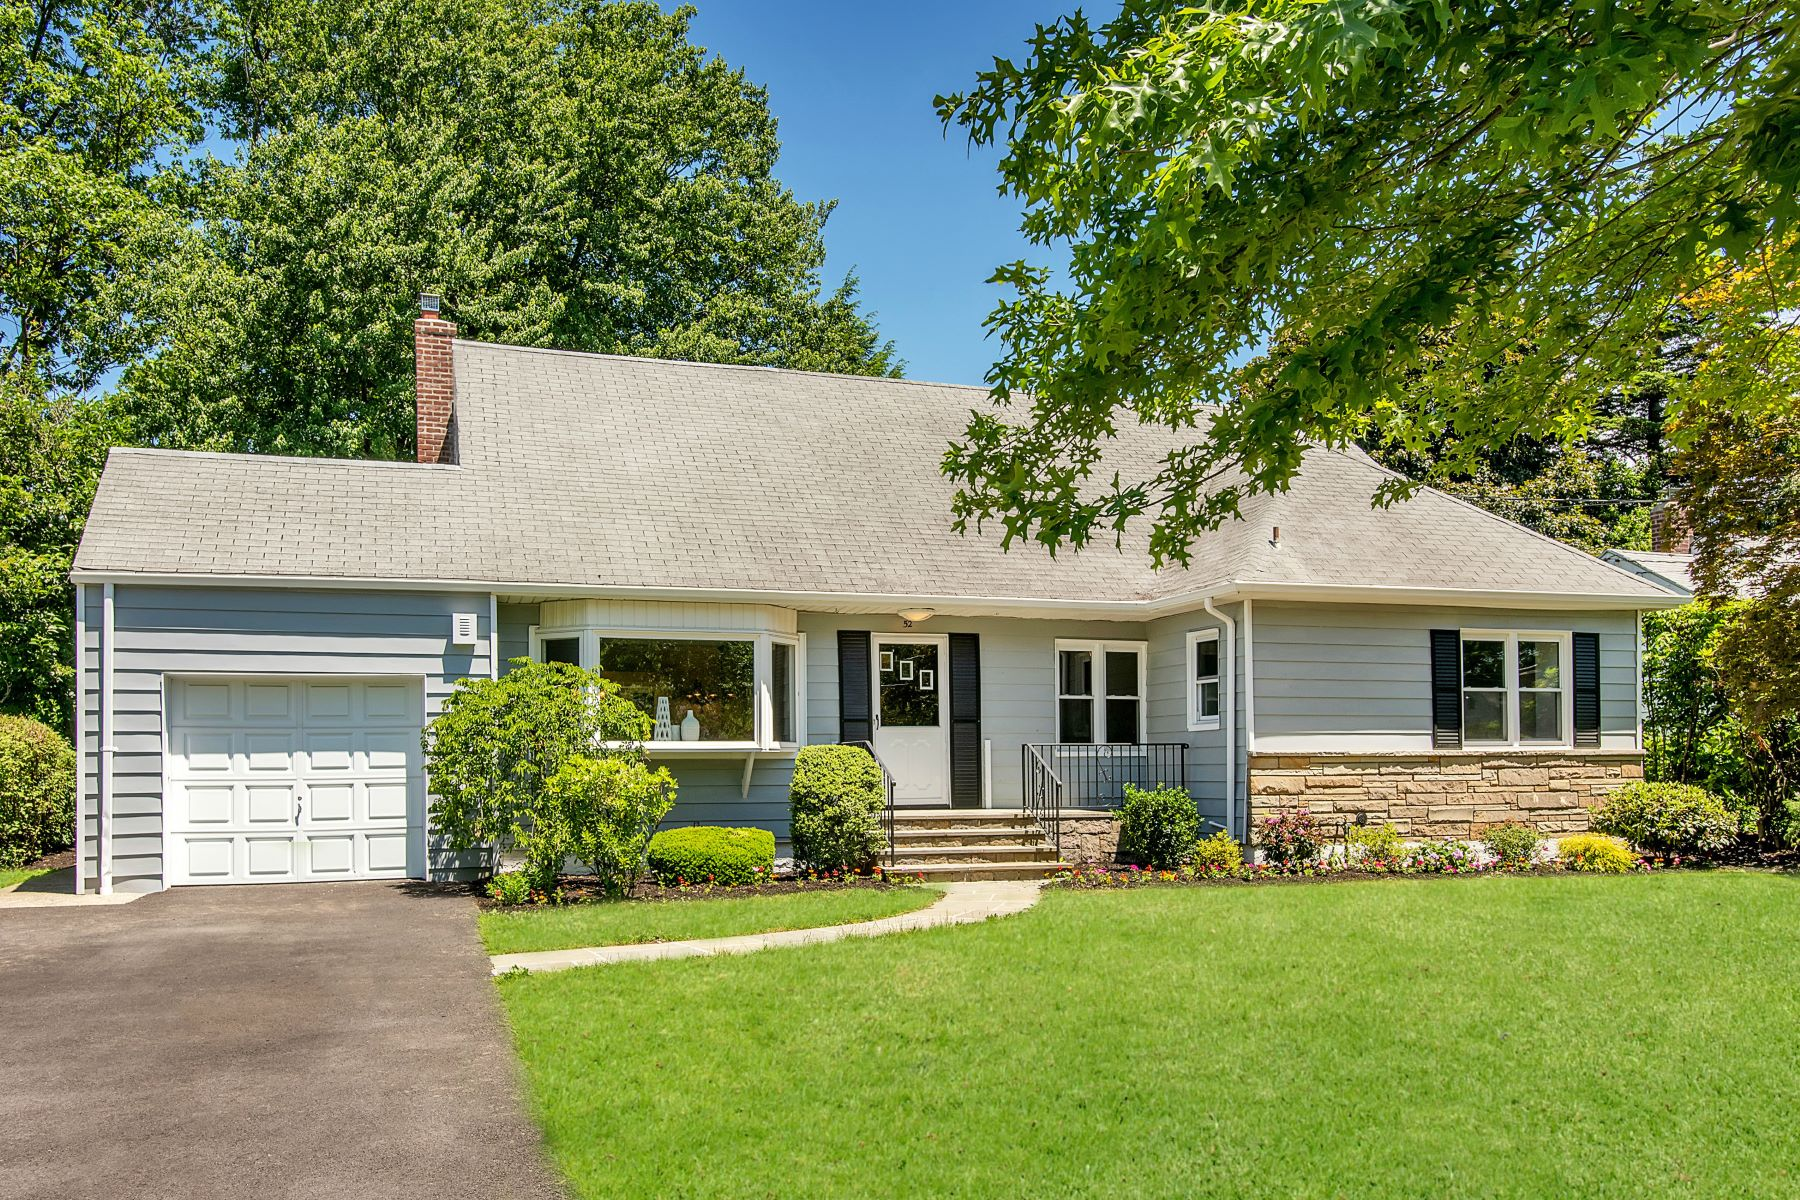 Single Family Homes for Sale at 52 Top O The Ridge Drive New Rochelle, New York 10583 United States